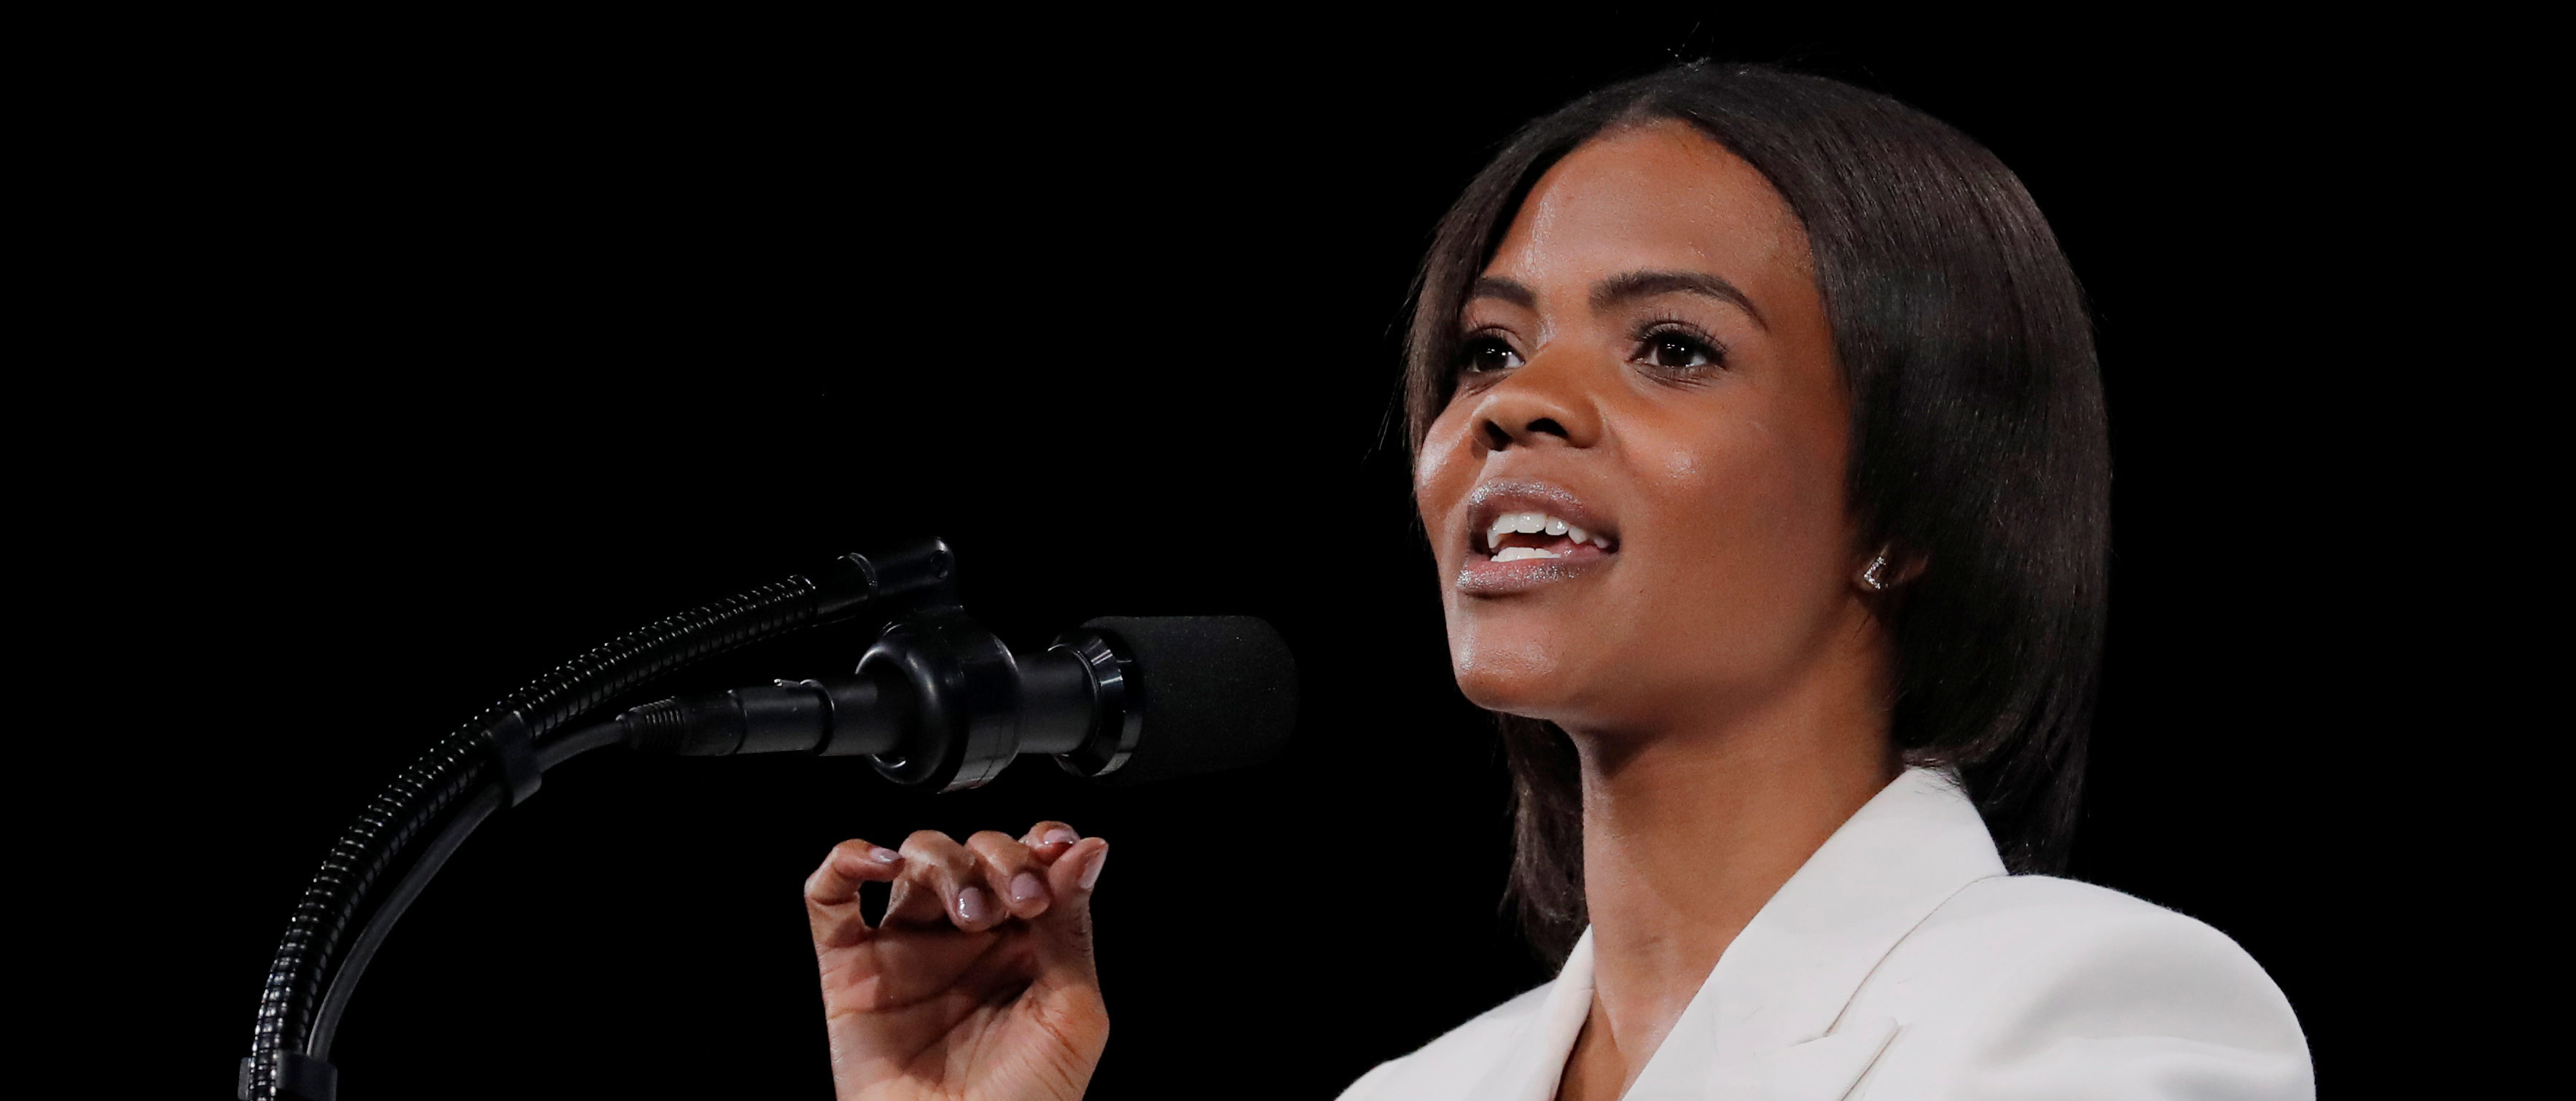 Activist Candace Owens addresses the 148th National Rifle Association (NRA) annual meeting in Indianapolis, Indiana, U.S., April 26, 2019. REUTERS/Lucas Jackson